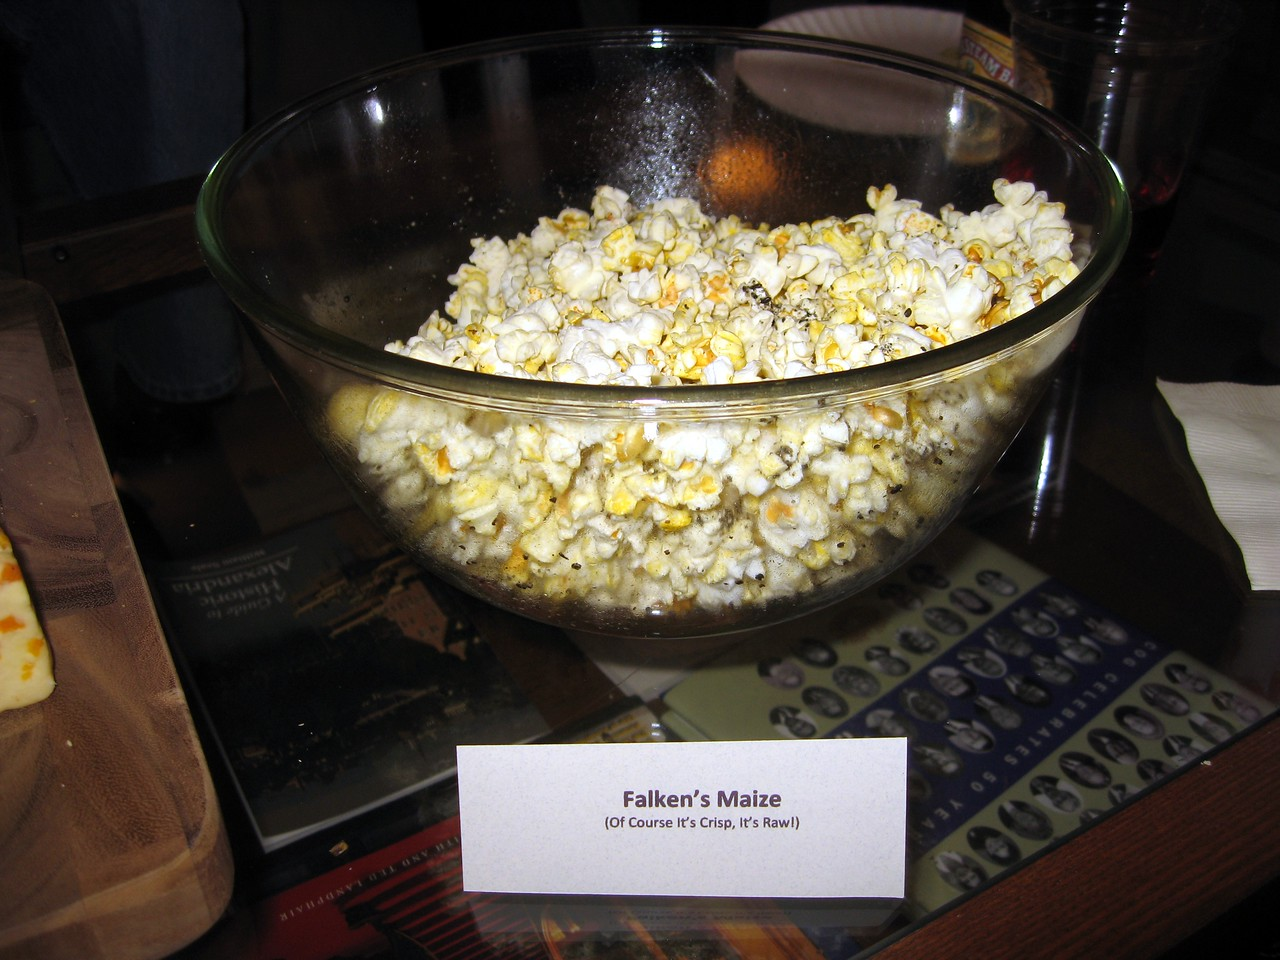 Falken's Maize -- Of Course It's Crisp, It's Raw!  (popcorn with black truffle salt and black pepper)